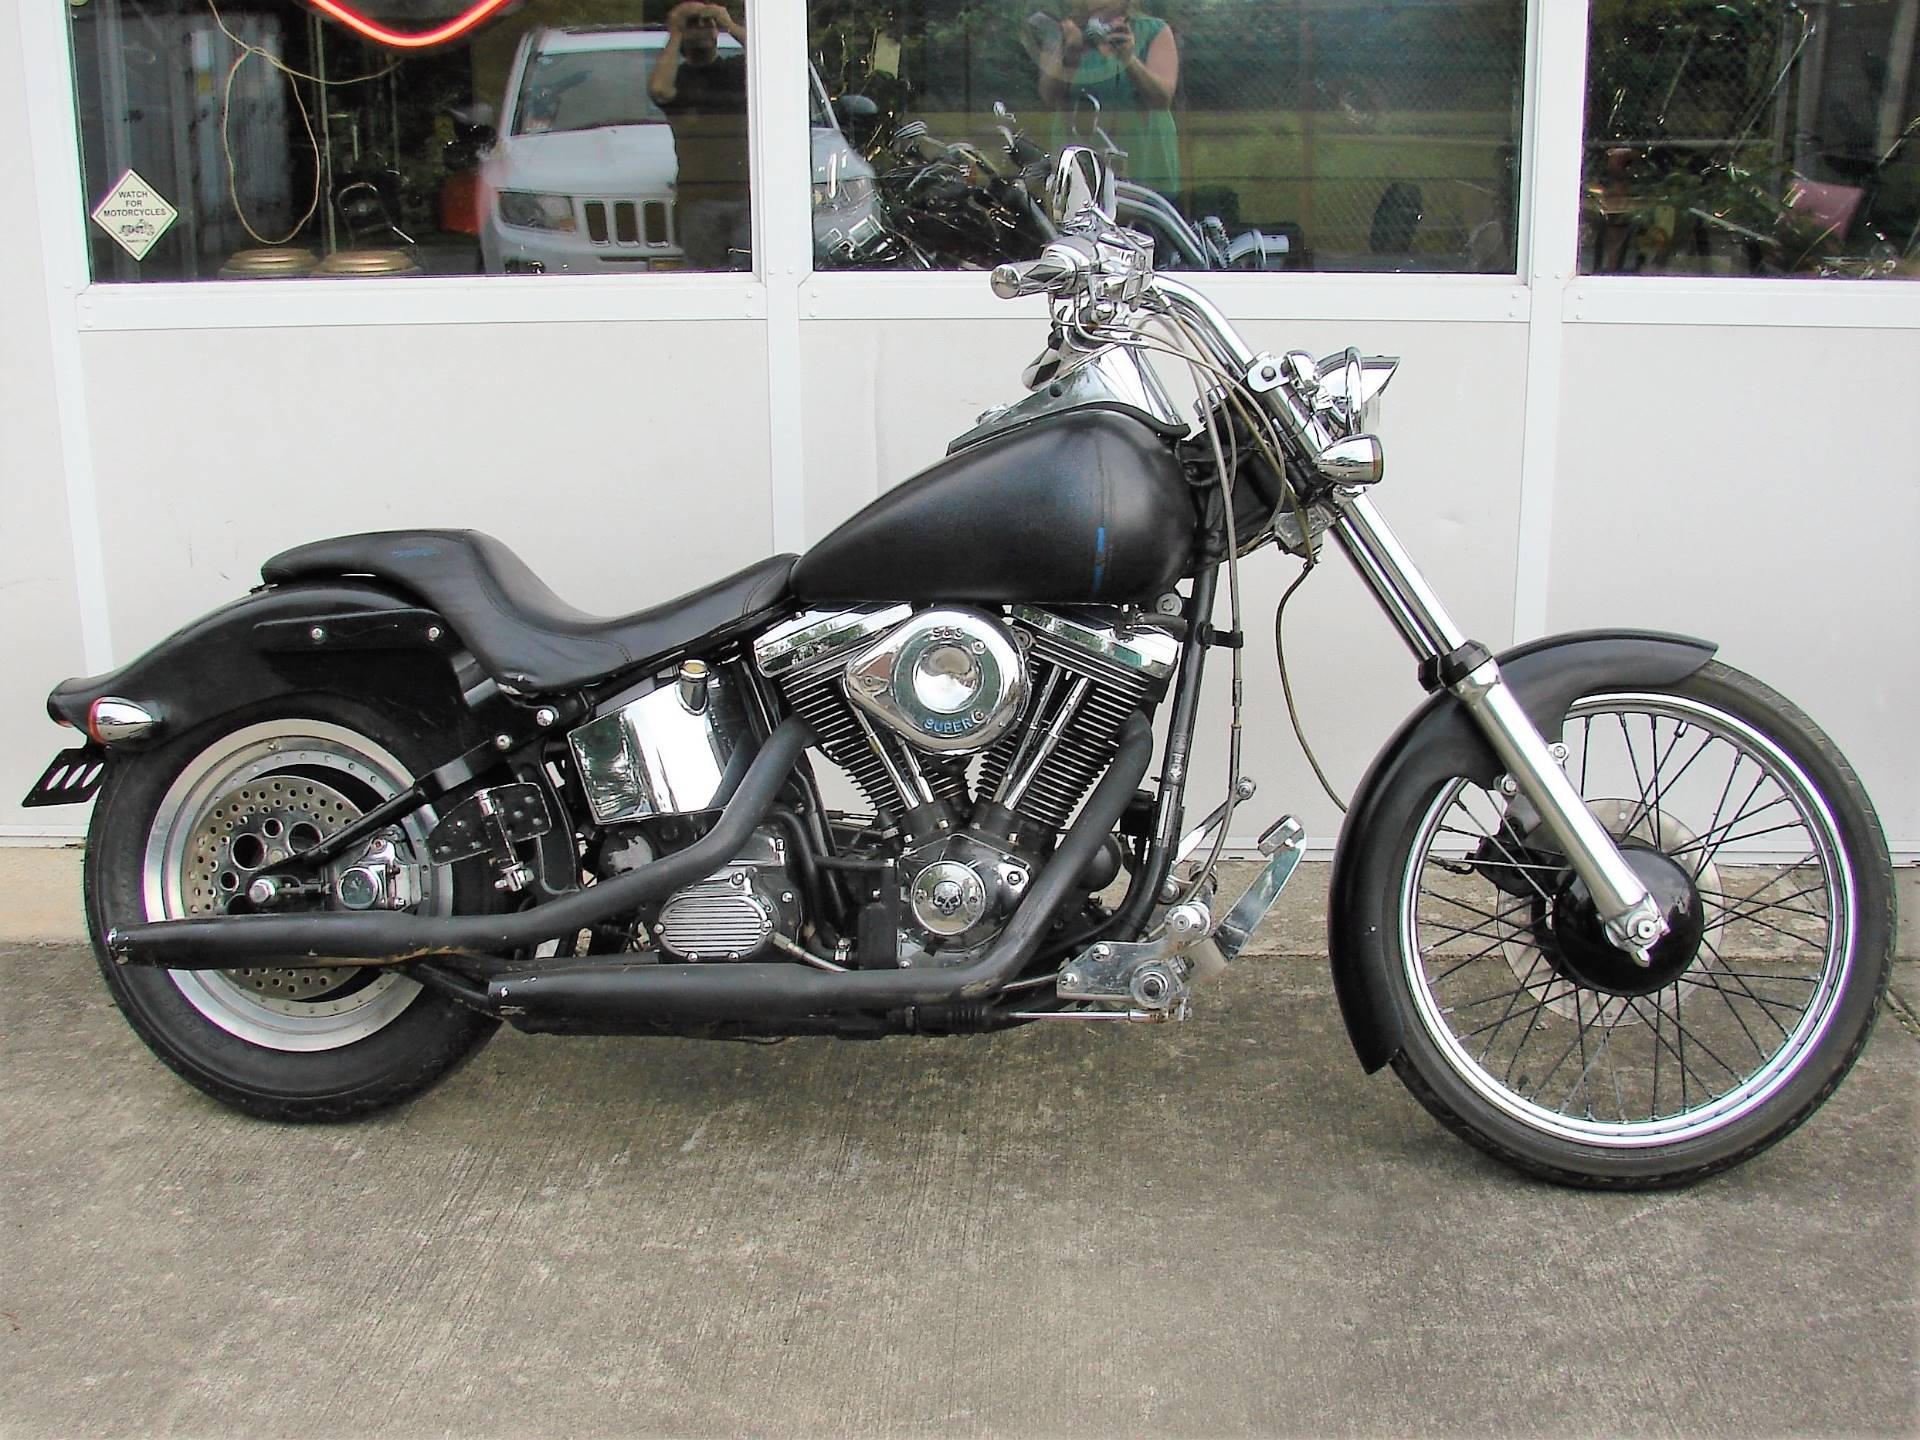 1998 Harley-Davidson FXSTC Softail Custom  (Black) in Williamstown, New Jersey - Photo 1